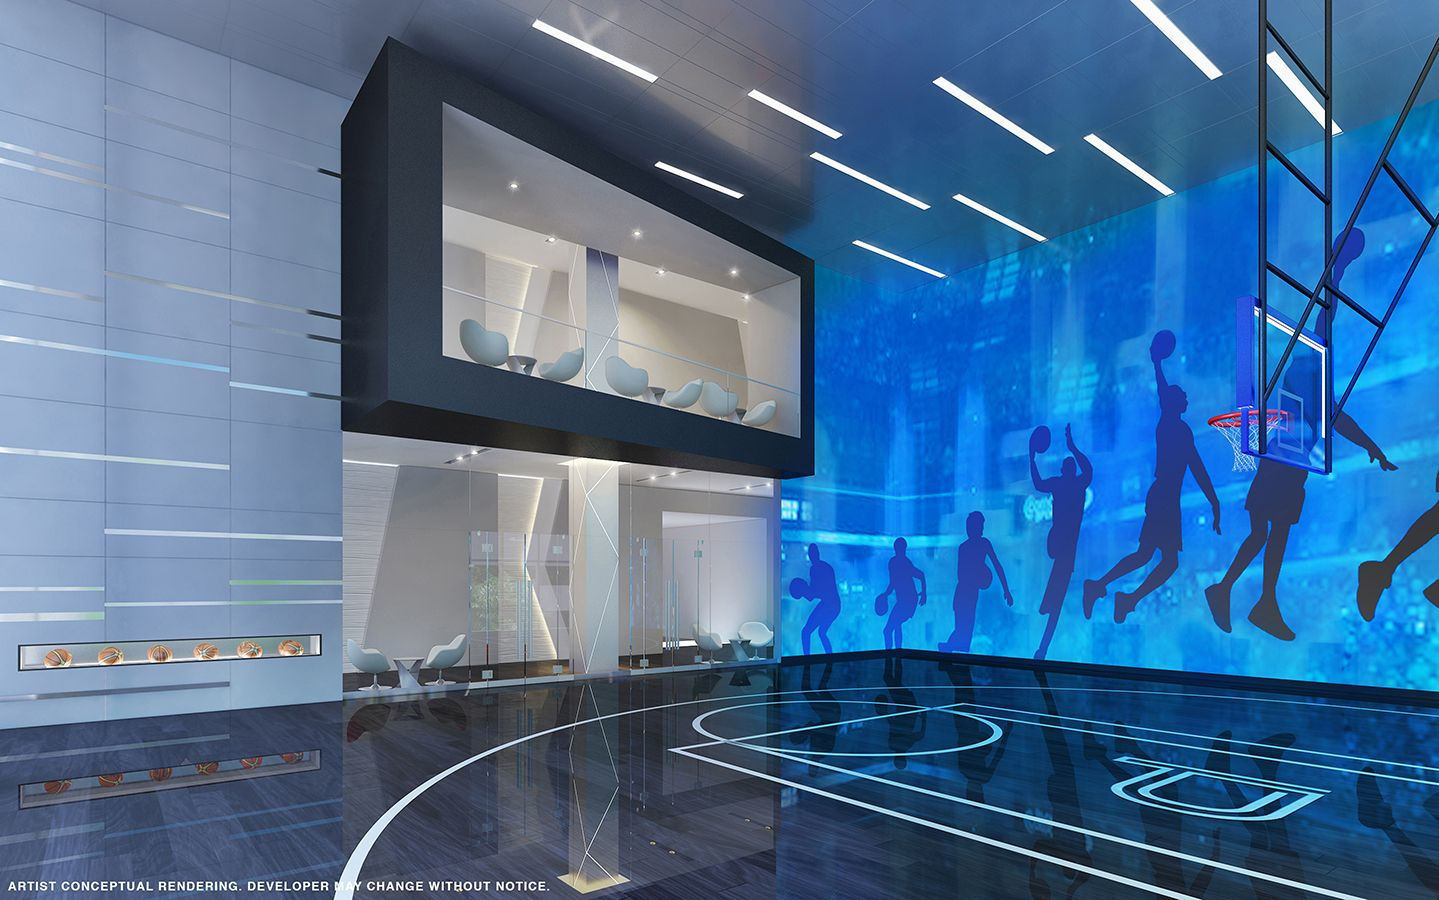 Office Building Basketball Court Paramount Miami Worldcenter Unveils Rooftop Observatory Deck Indoor